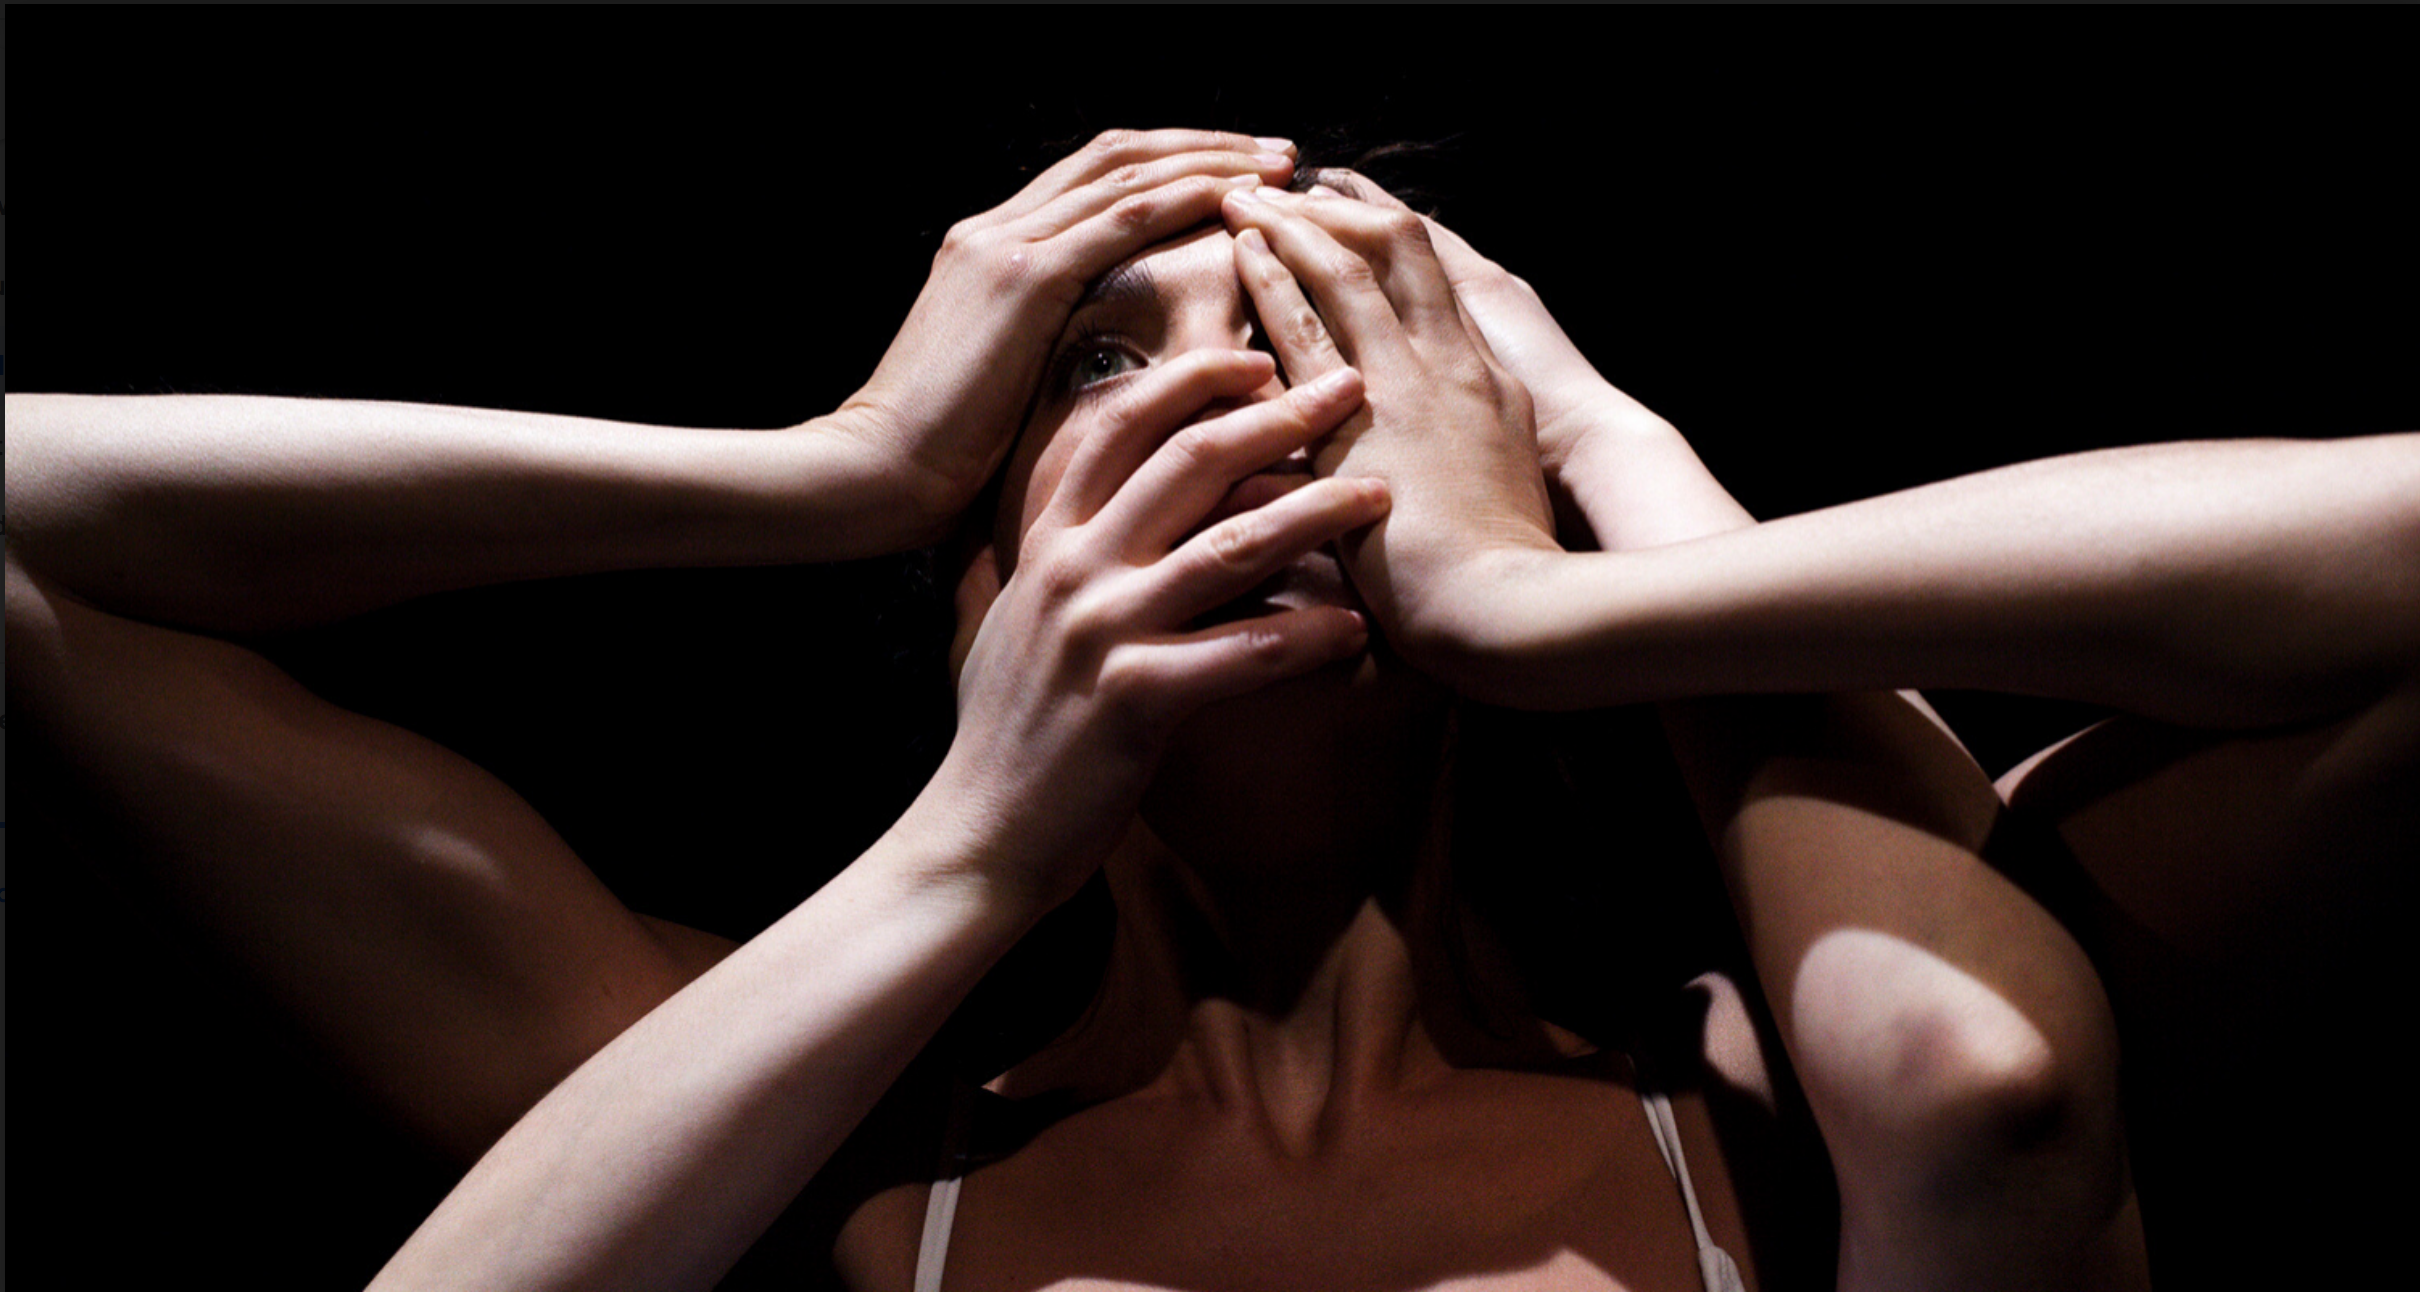 Woman with four hands covering her face.